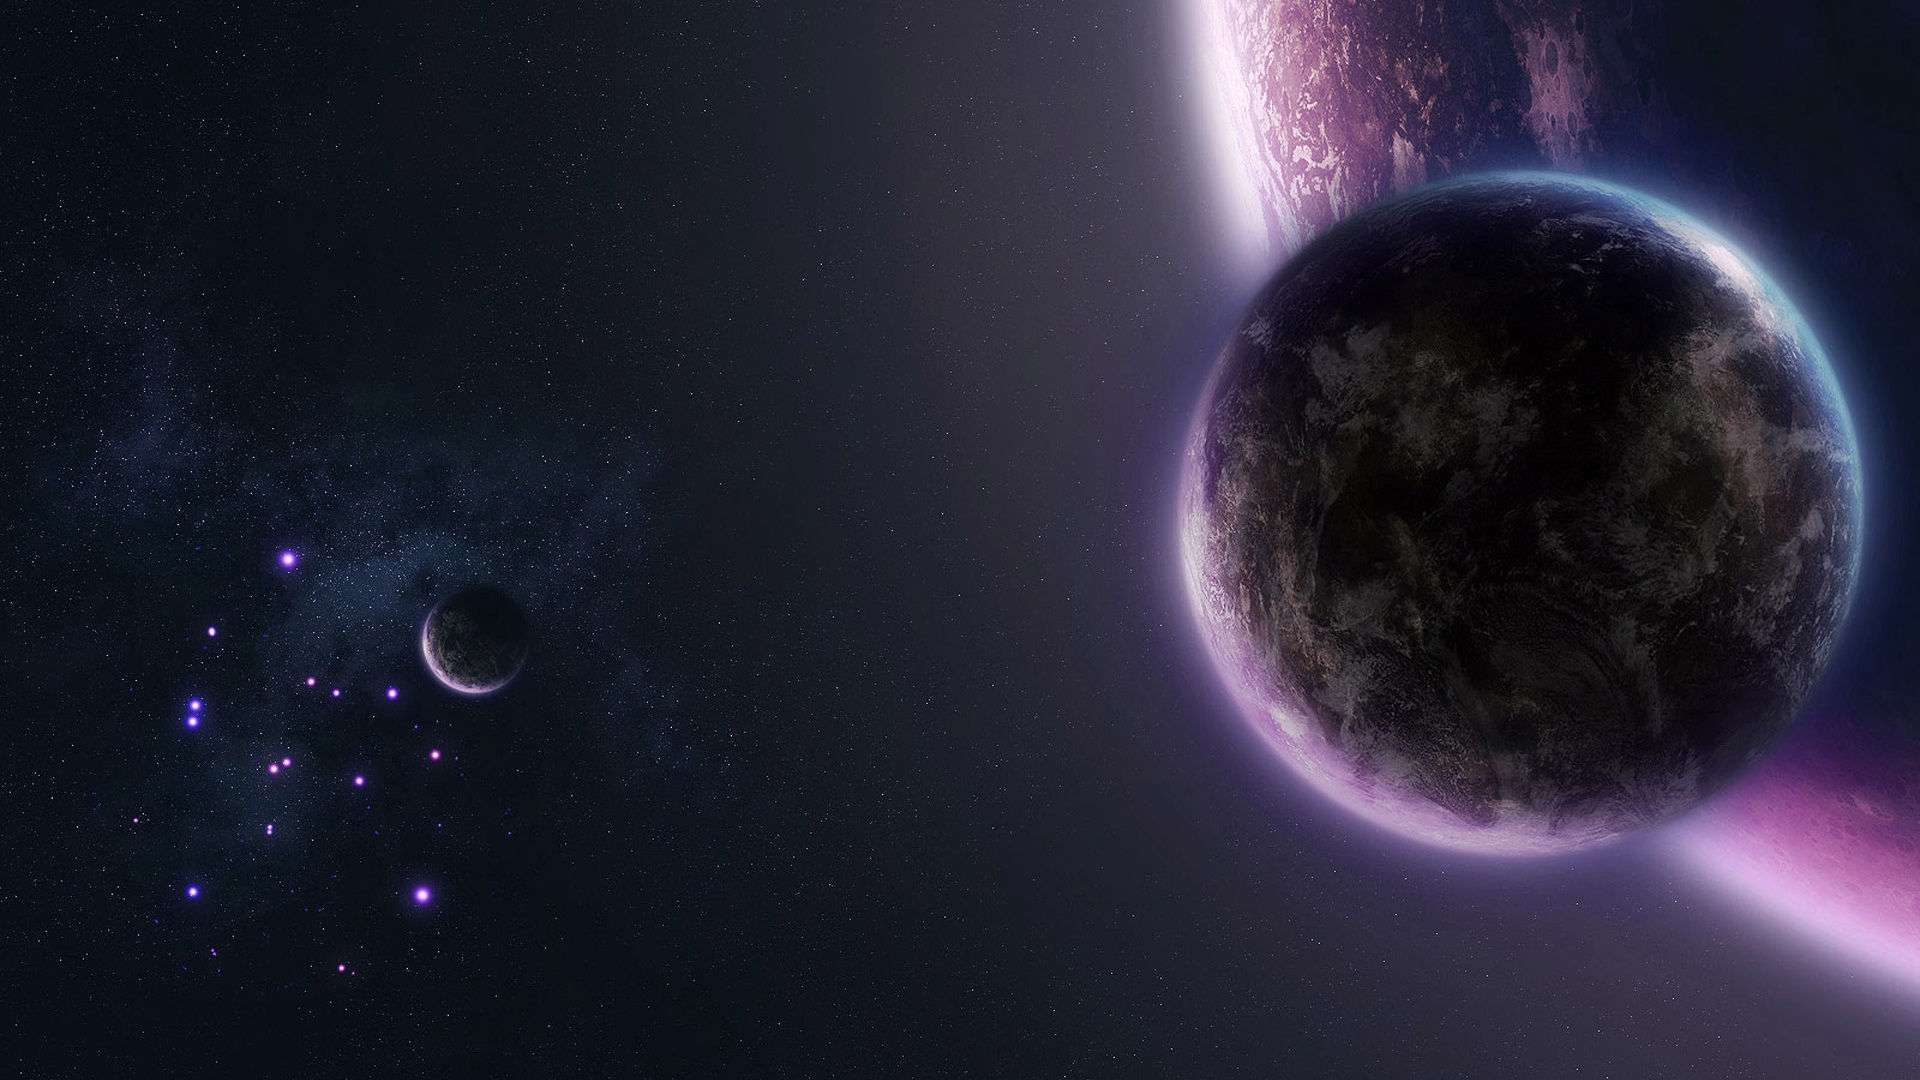 Space Wallpaper 010